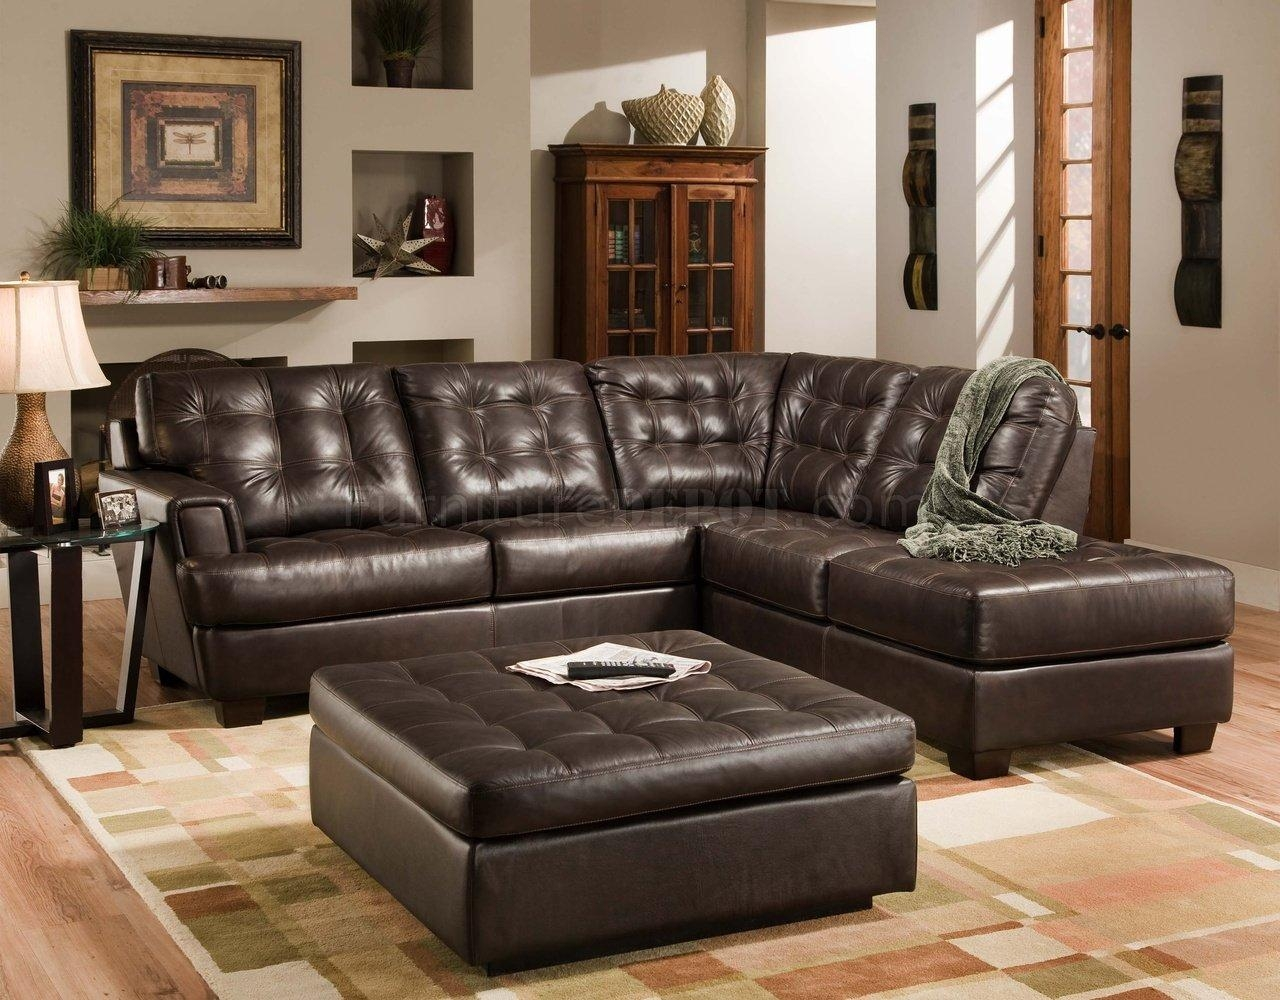 Furniture: Best Design Of Brown Leather Sectional For Modern Pertaining To Leather Modular Sectional Sofas (Image 5 of 20)